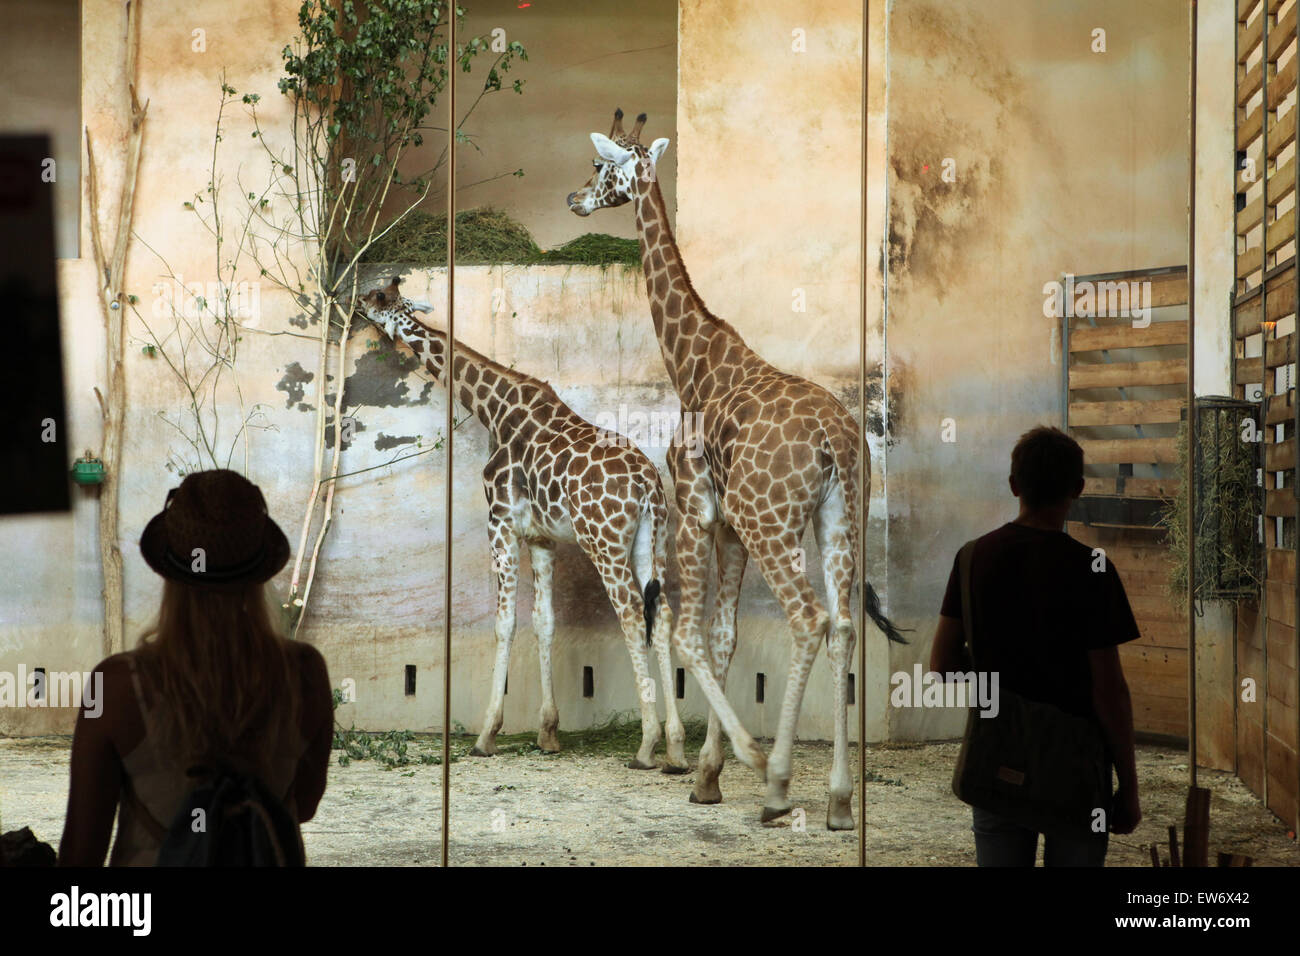 Visitors look at the Rothschild's giraffes (Giraffa camelopardalis rothschildi) at Prague Zoo, Czech Republic. - Stock Image